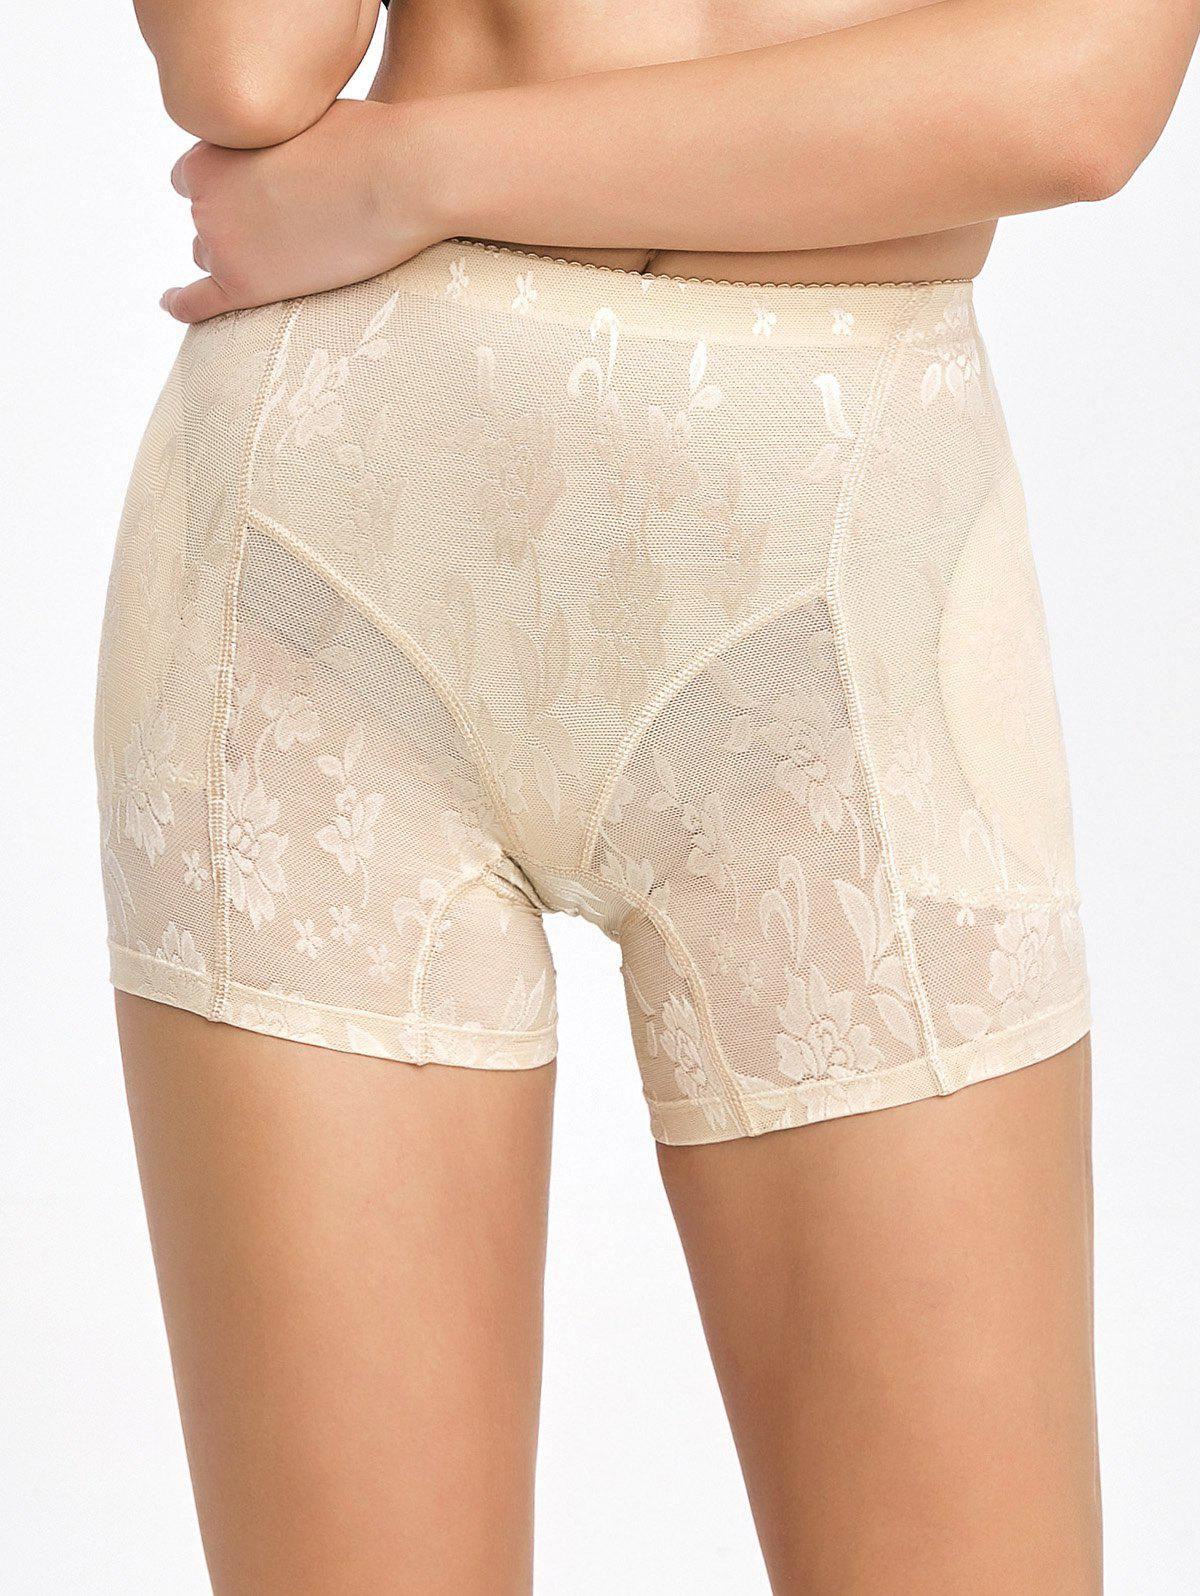 Floral See-Through Padded Boyshorts - COMPLEXION 2XL